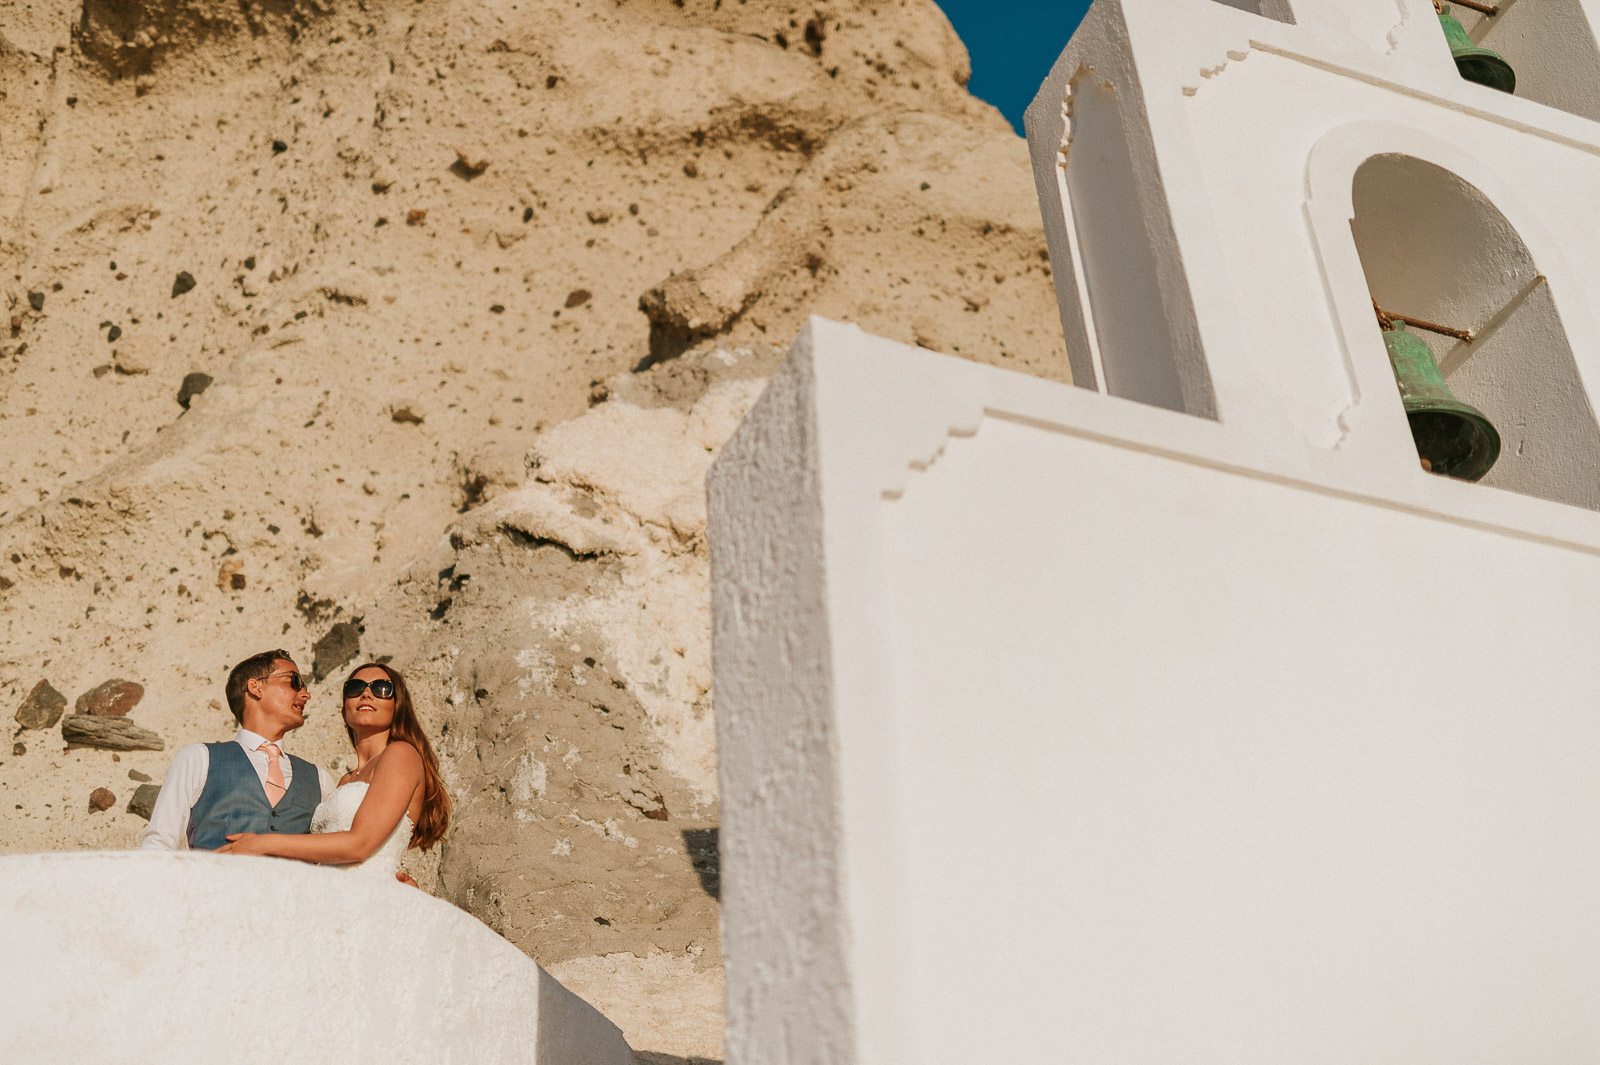 Santorini-Wedding-Photographer-Greece-Destination-Weddings-Mait-Juriado-M&J-Studios-072